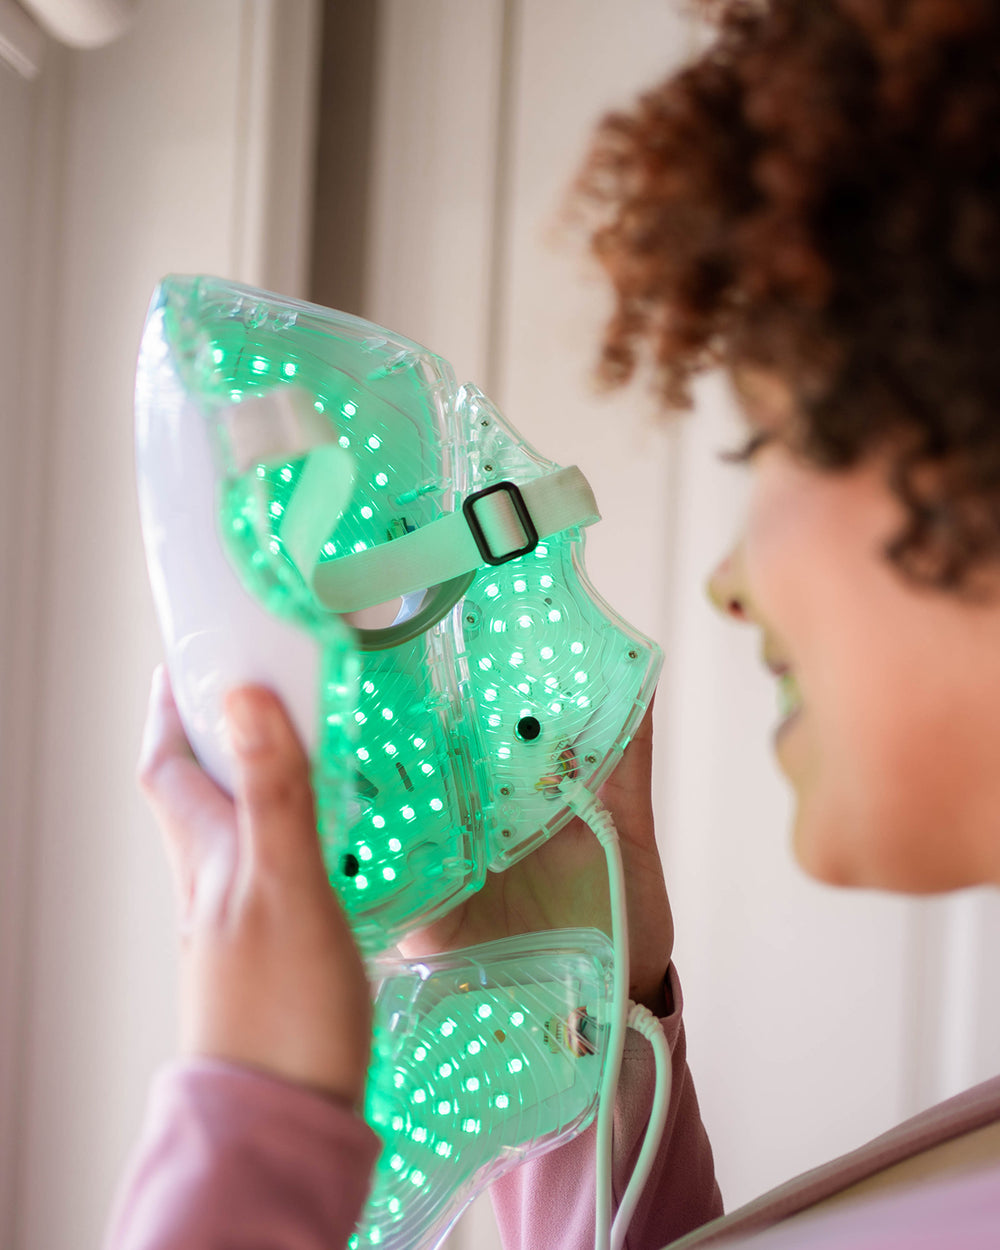 Best-Light-Therapy-Mask-DermaLight-Derma-Light